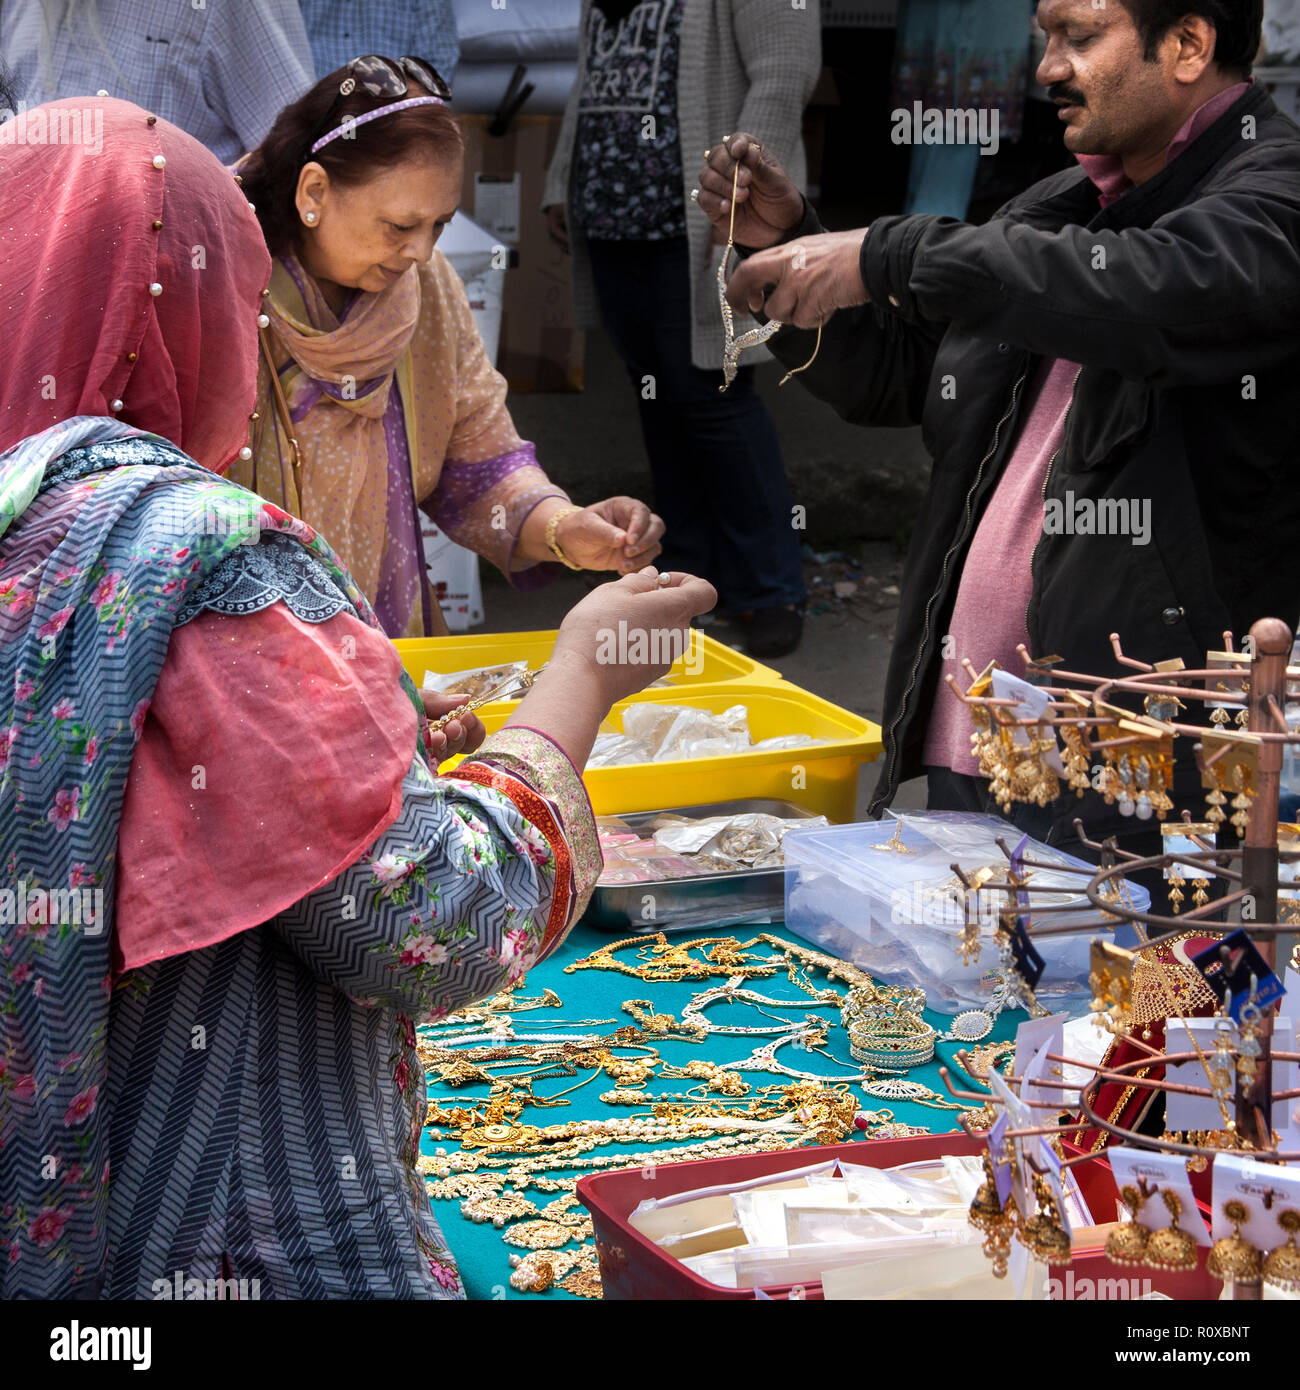 southall open air market, Southall, London ,England - Stock Image